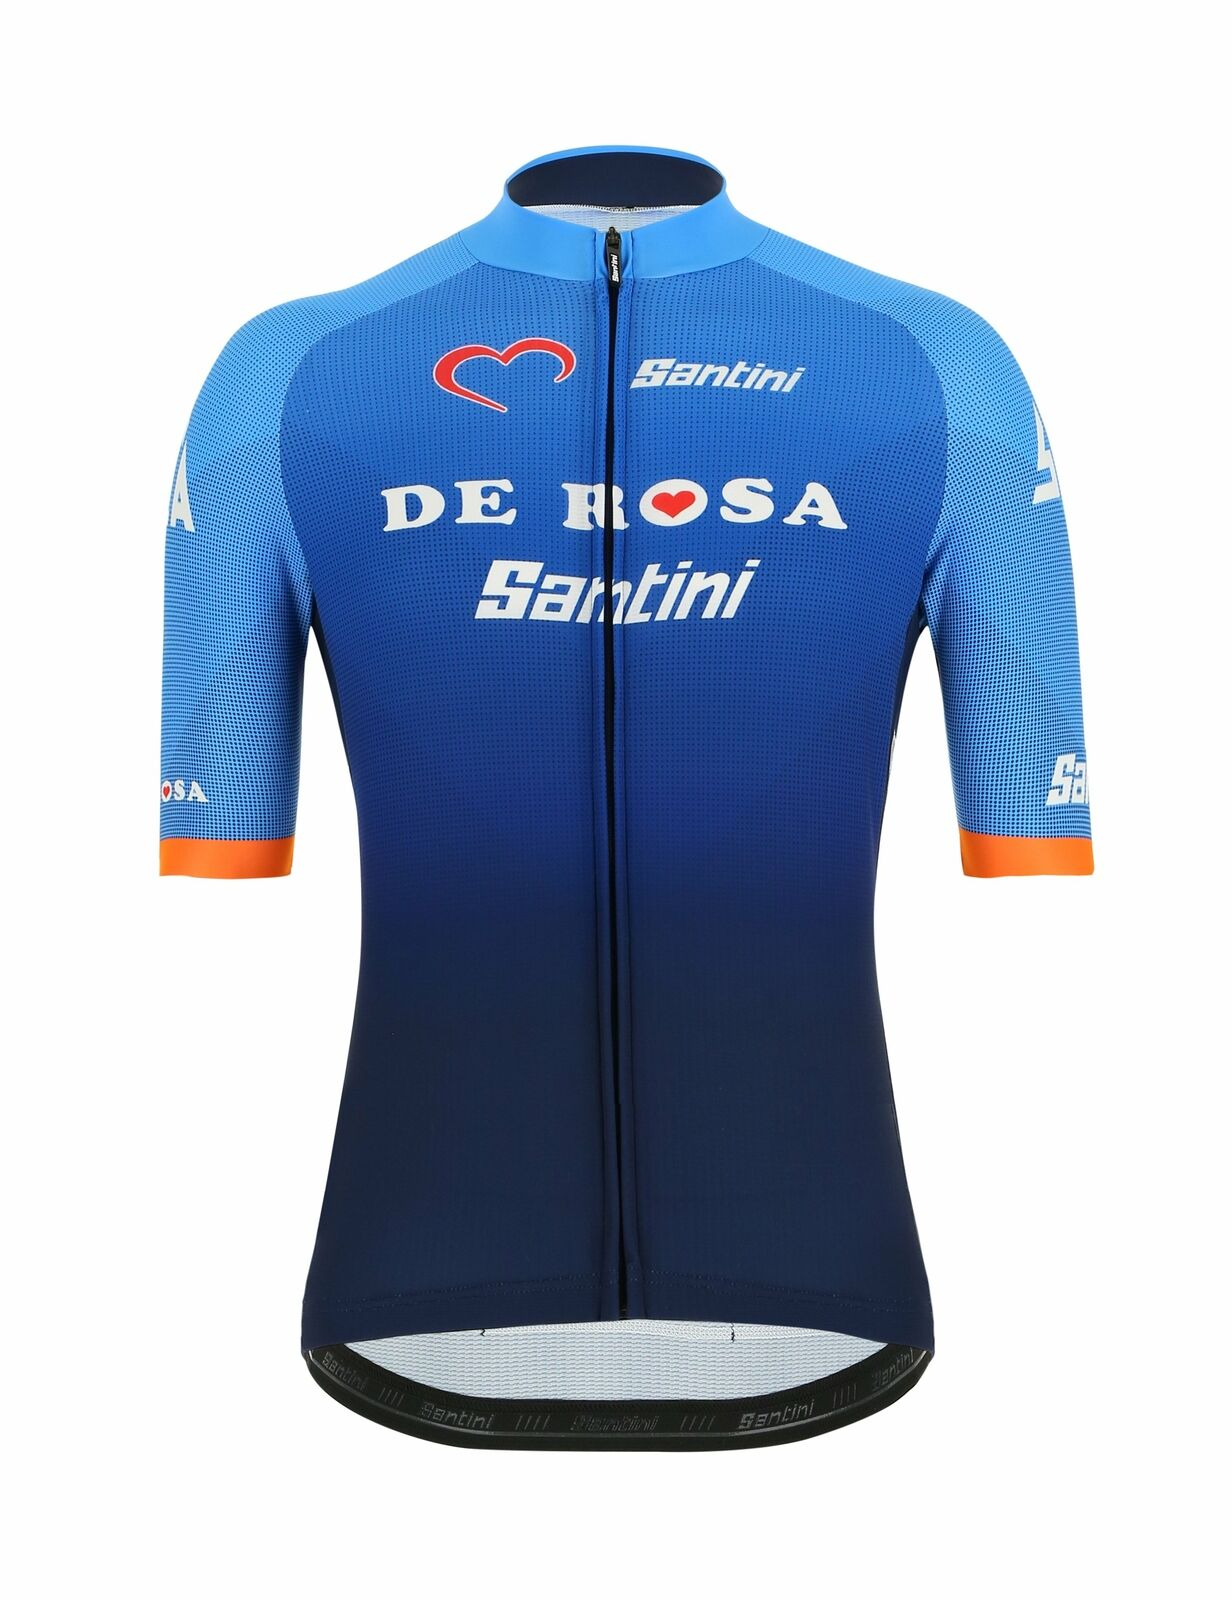 2019 Santini De pink Men's Cycling Jersey Made in